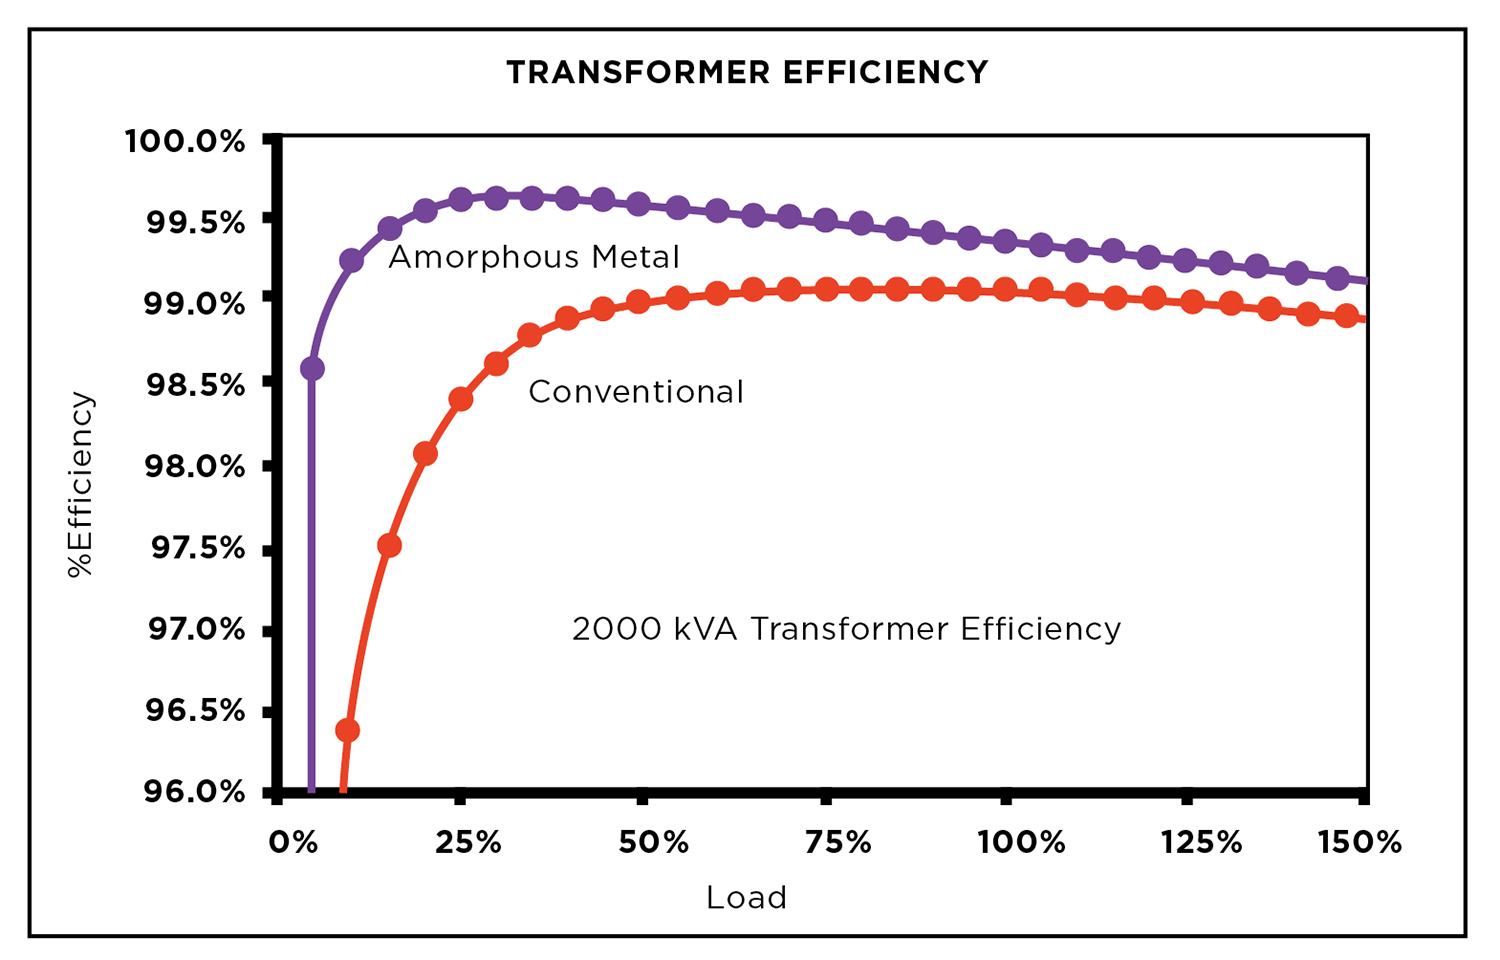 Figure 2. Transformer efficiency comparison chart